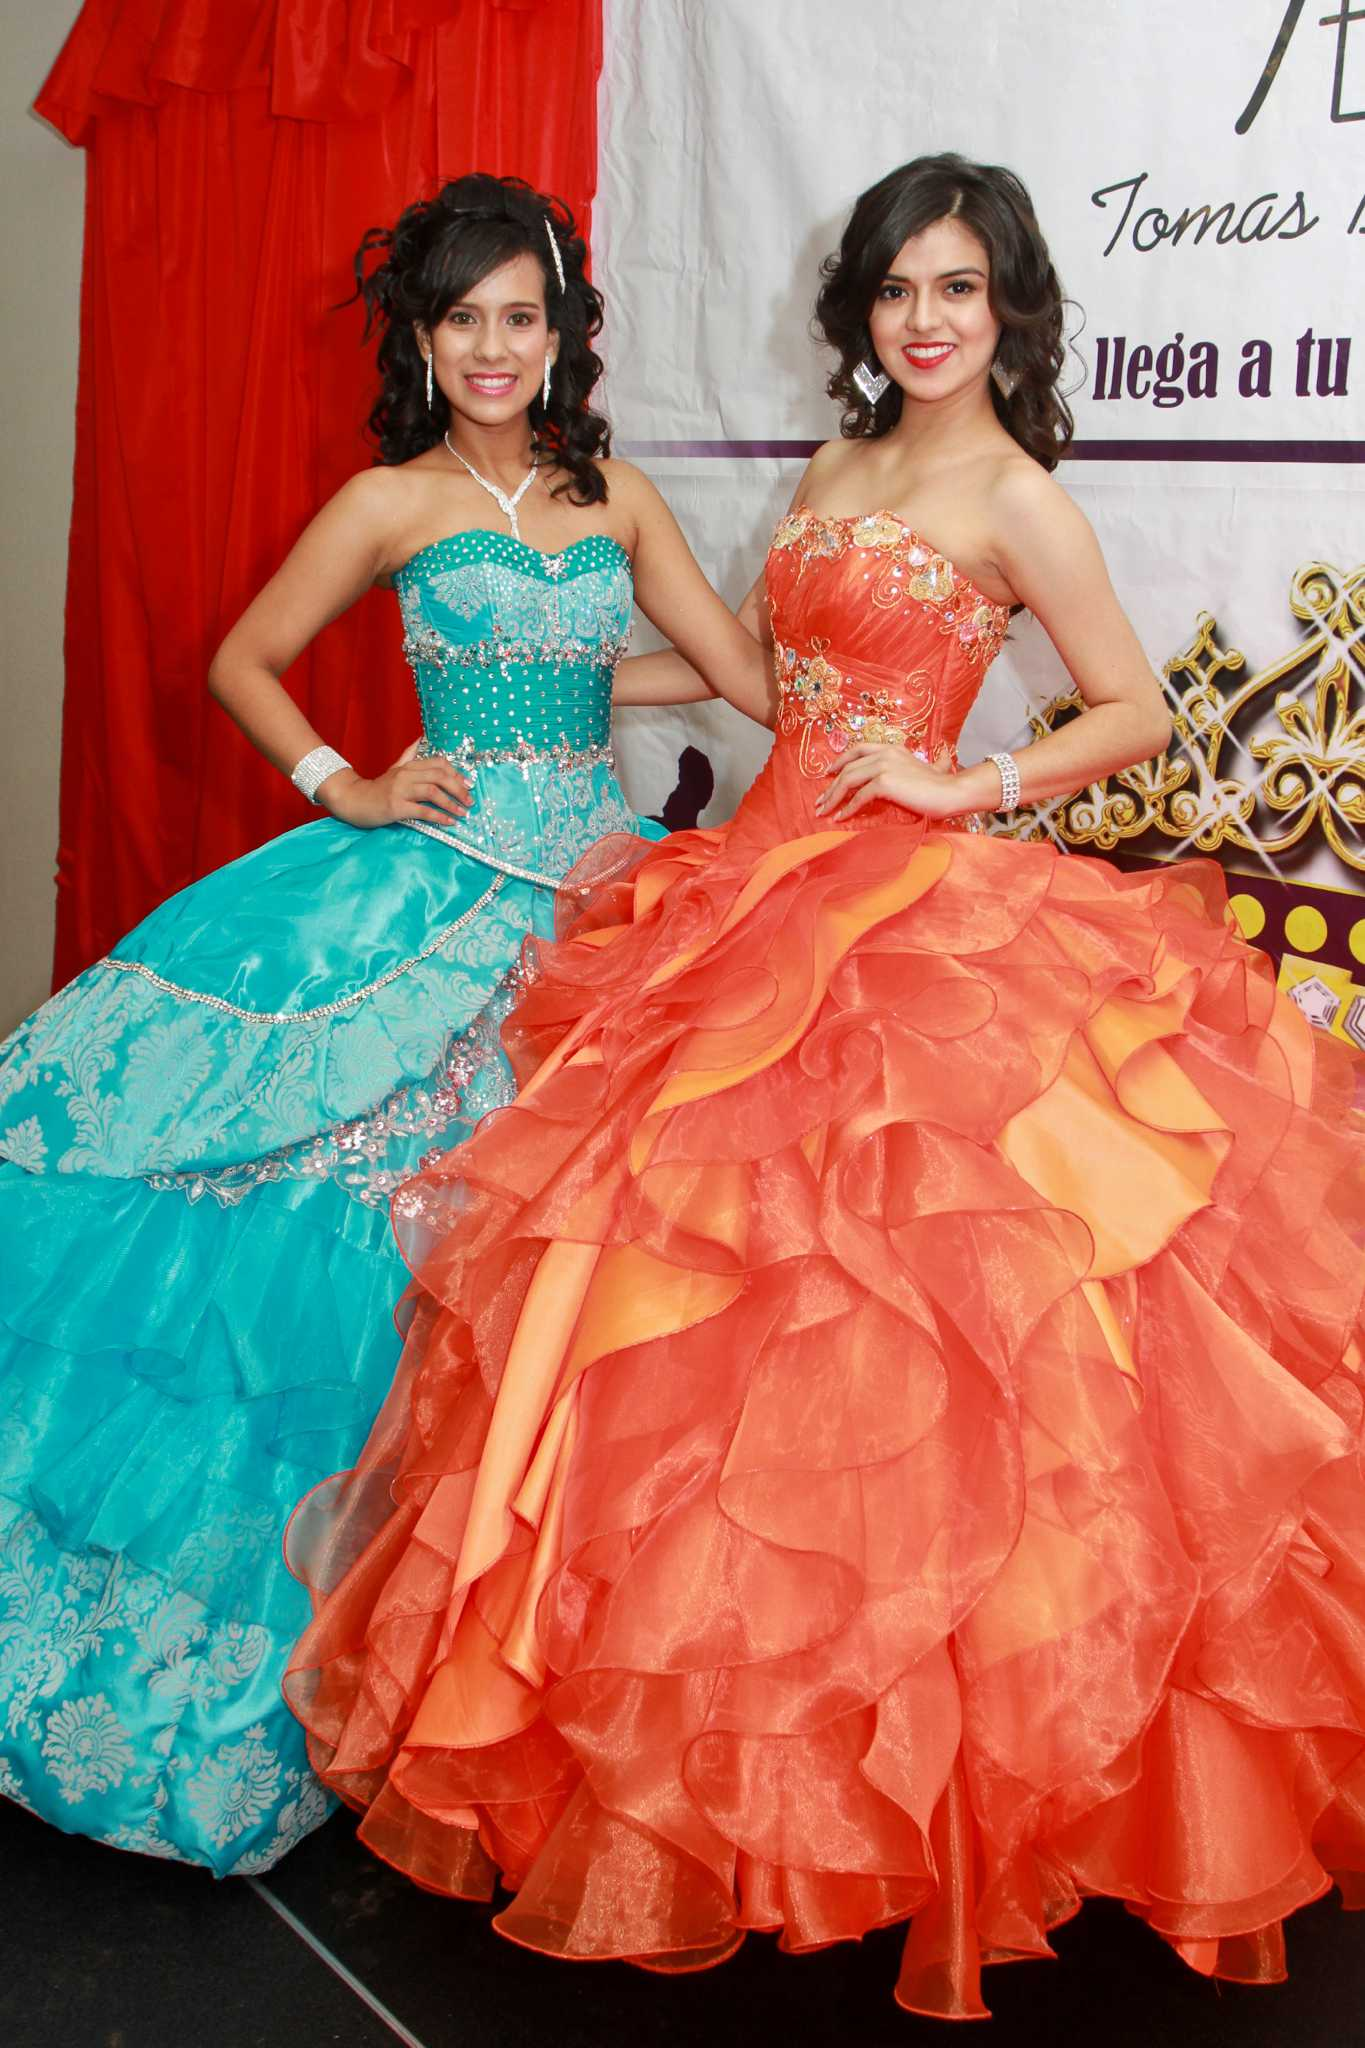 859c2d38b4 The perfect dress for every 15-year-old princess - Houston Chronicle